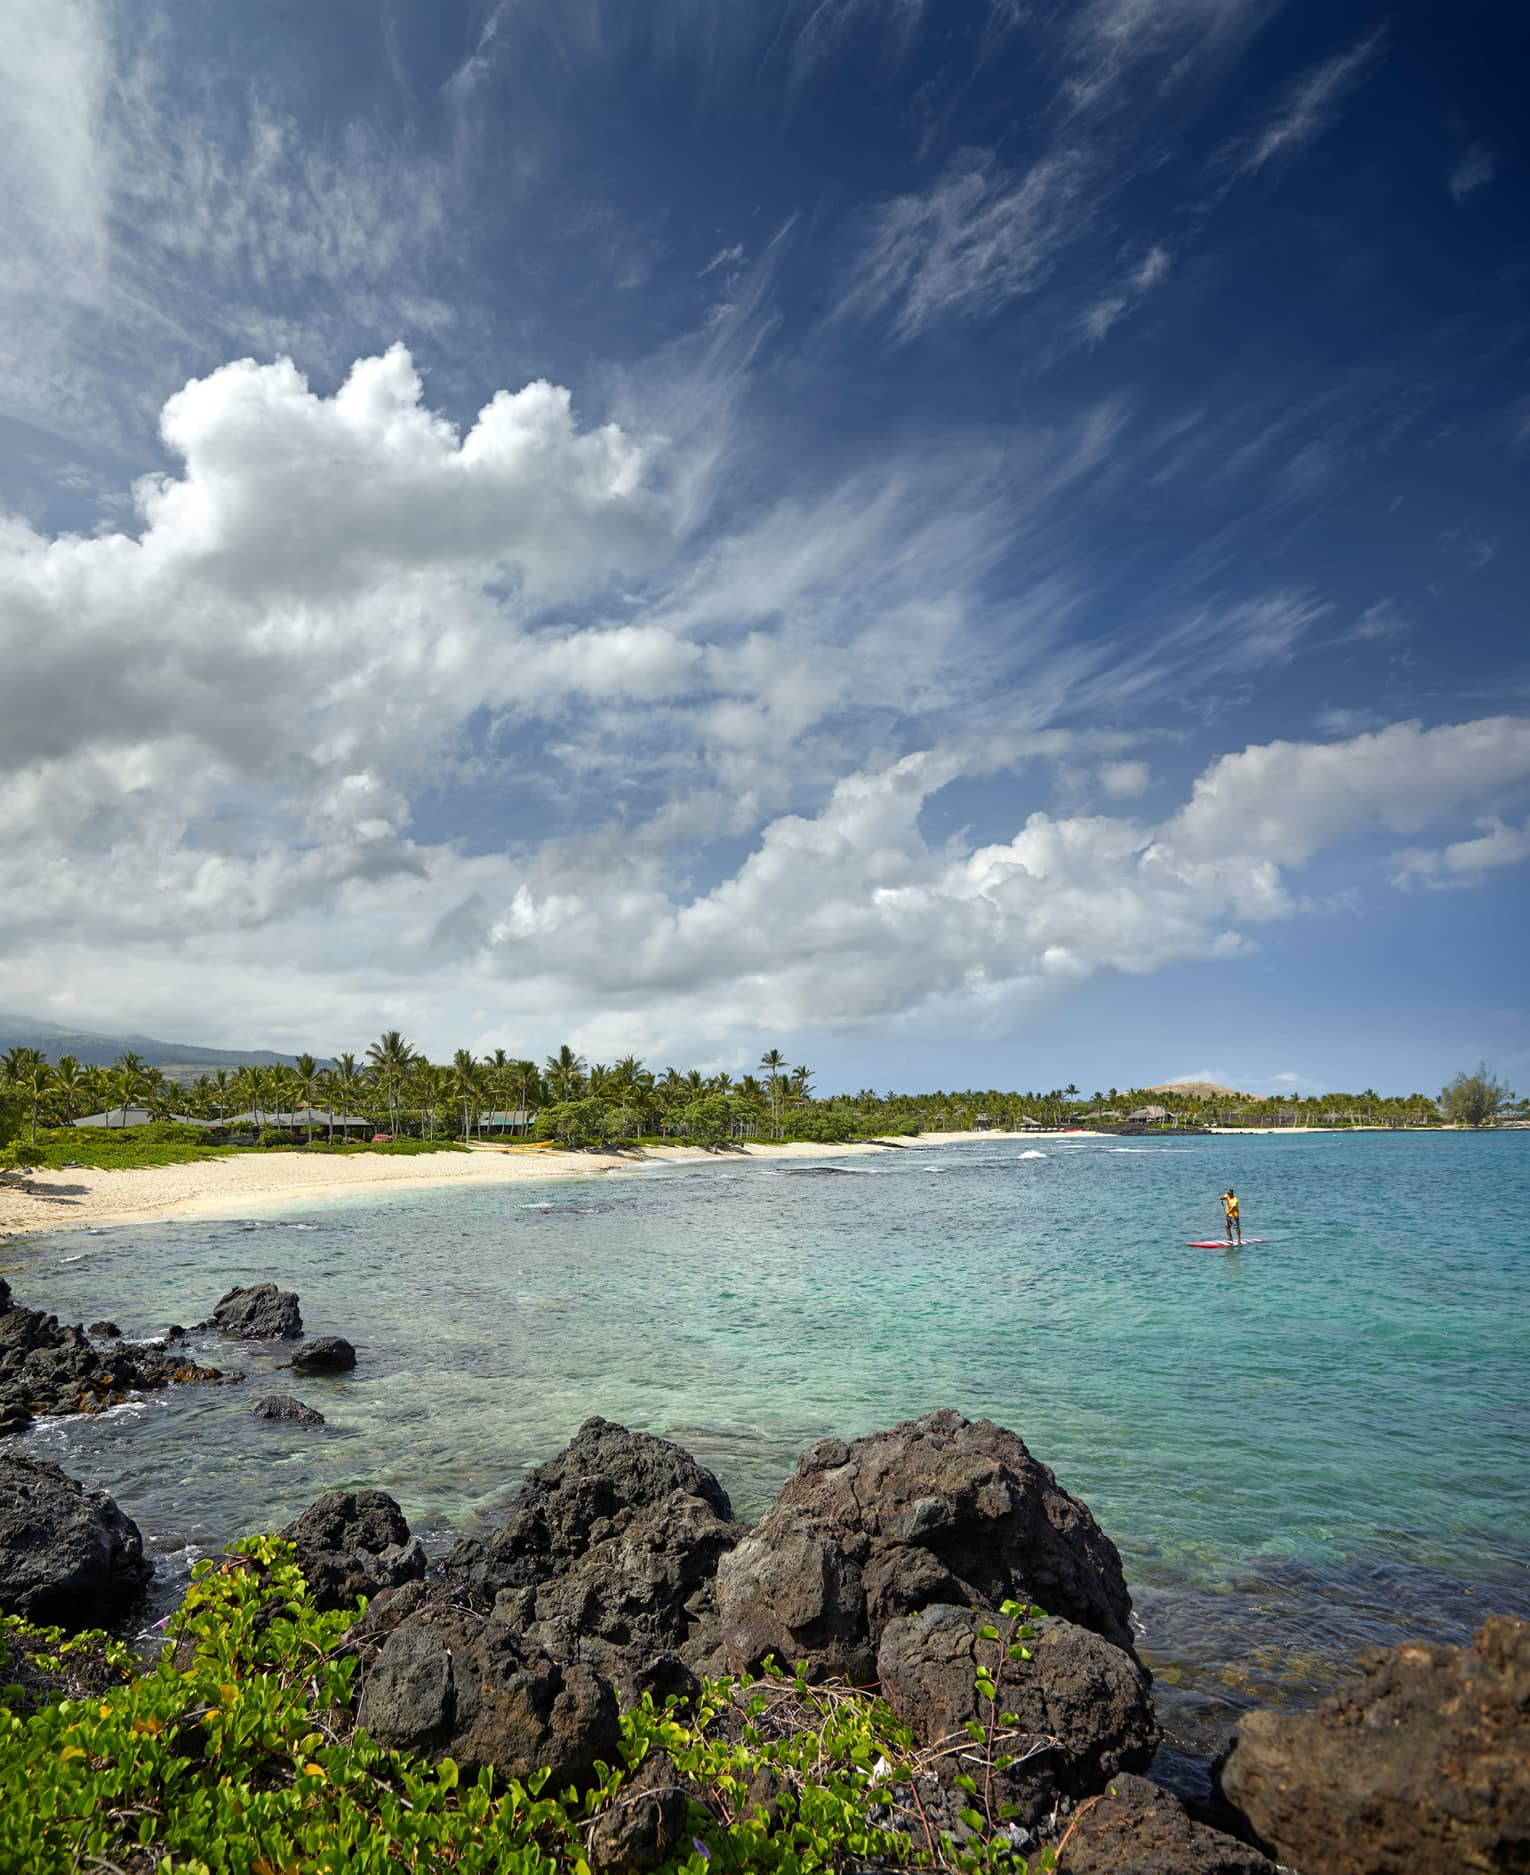 Person on stand-up paddleboard in lagoon past large black lava rocks, near white sand beach